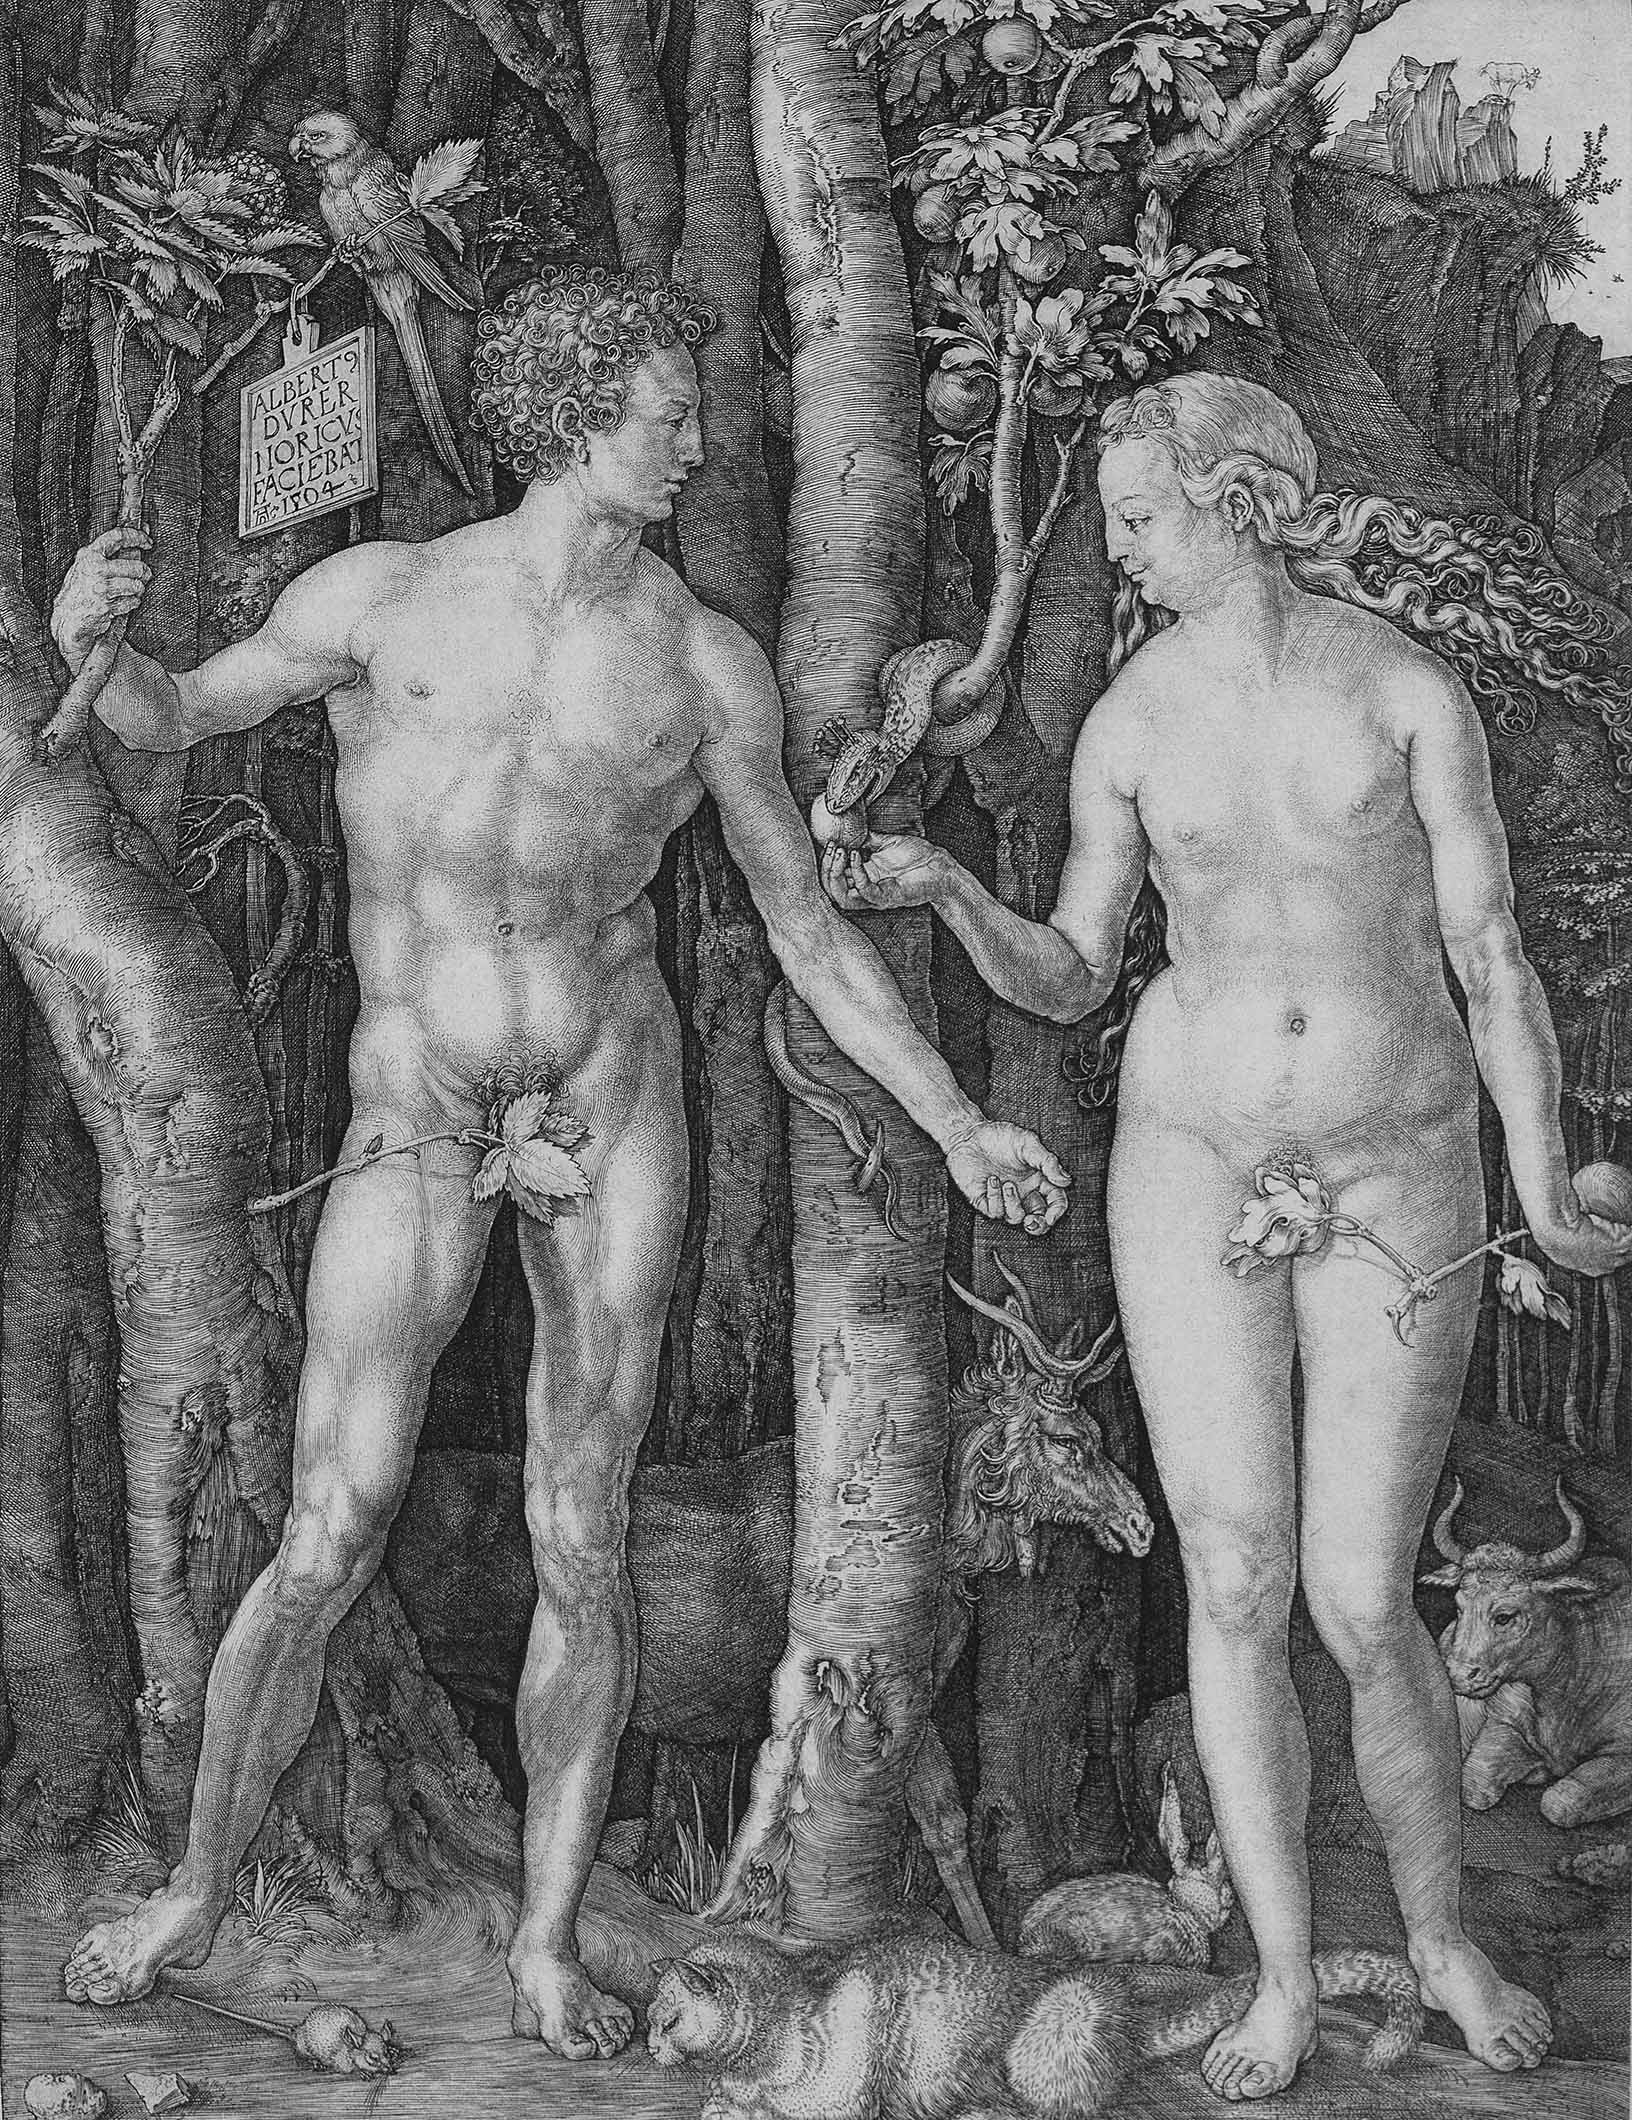 Albrecht Dürer (Nuremberg 1471–1528), Adam and Eve, copper engraving, monogrammed and dated in the plate AD 1504, 24.9 x 19 cm, realised price € 41,780.00, sold on 4 Nov. 2010